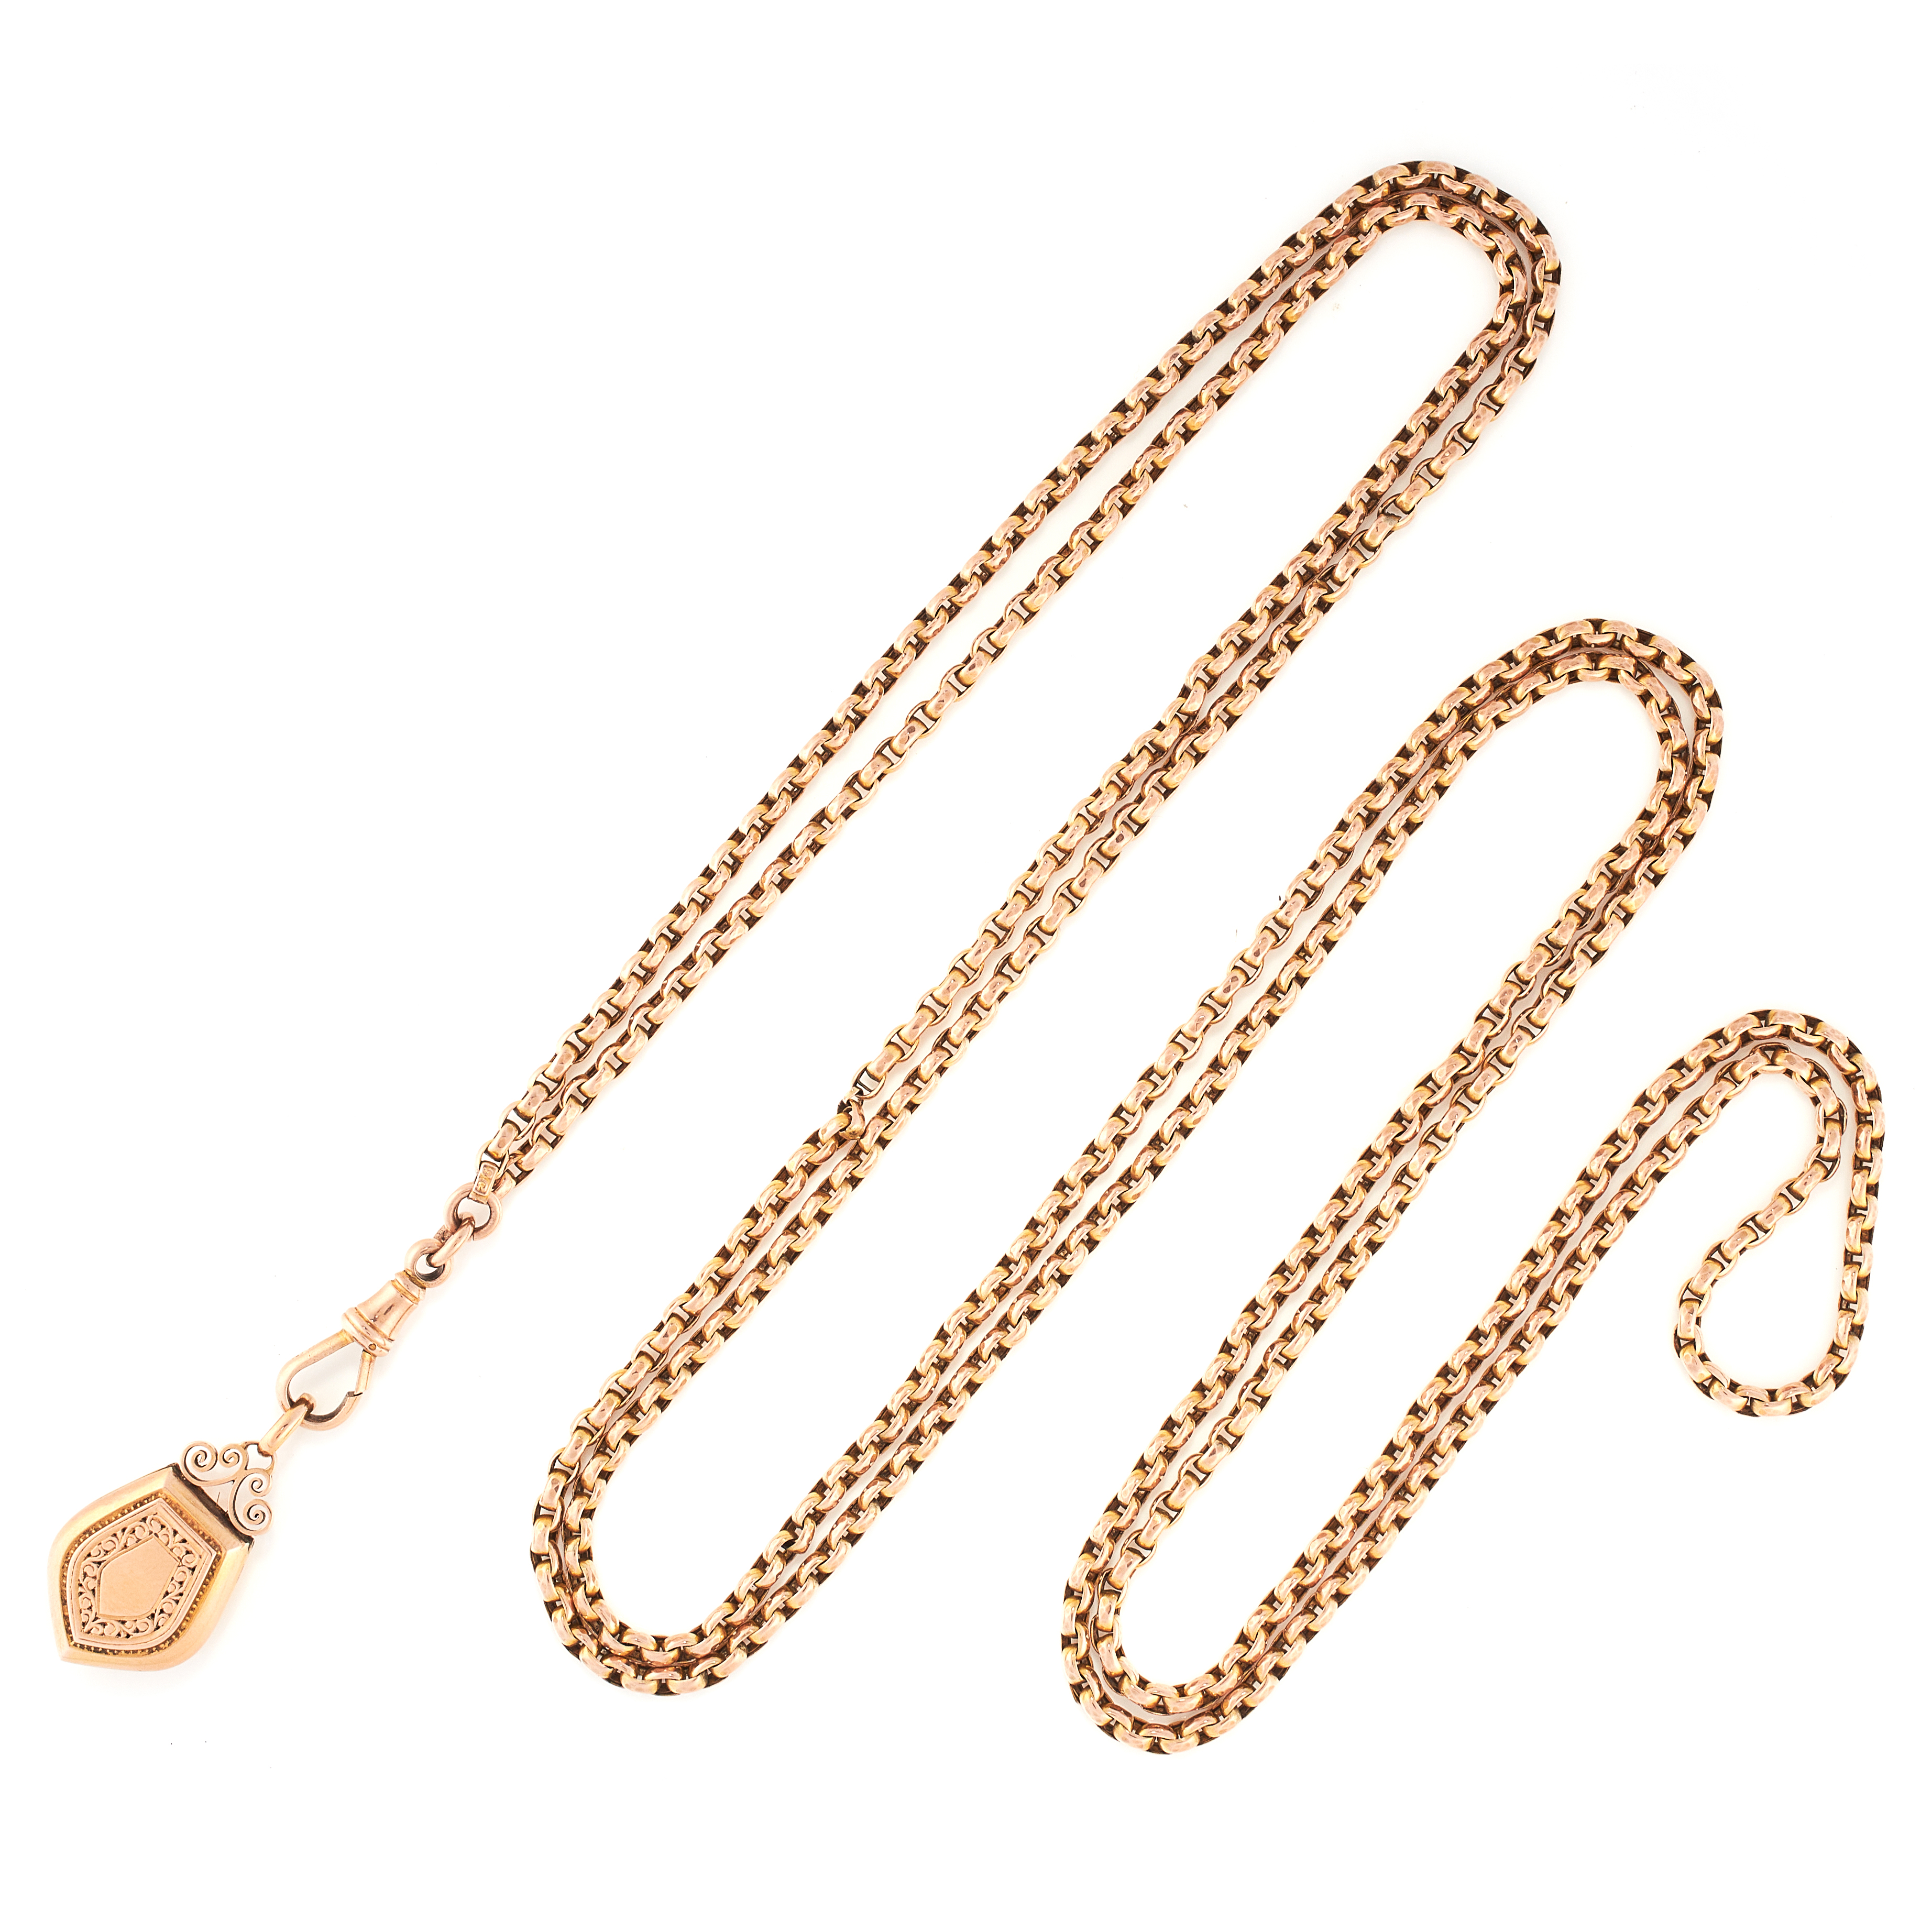 AN ANTIQUE GUARD CHAIN AND LOCKET NECKLACE in yellow gold, the guard chain suspending a shield